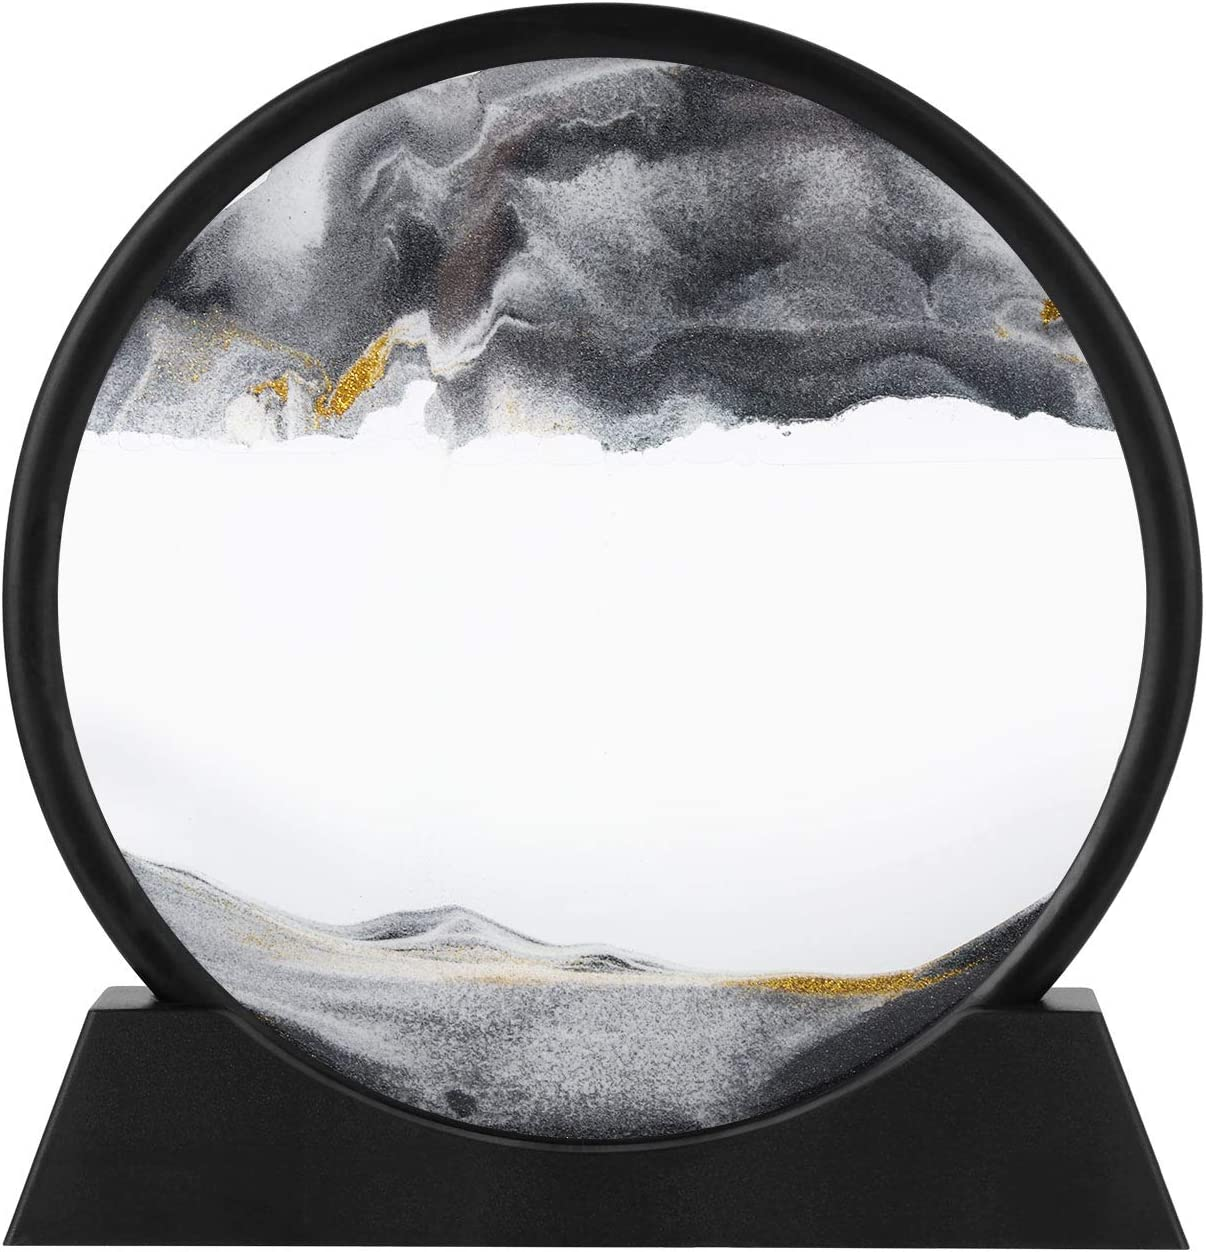 12inch Moving Sand Art Picture,3D Deep Sea Sandscape in Motion Display Flowing Sand Frame Flowing,Round Glass Grit Photo Hourglass (Black, 12inch)